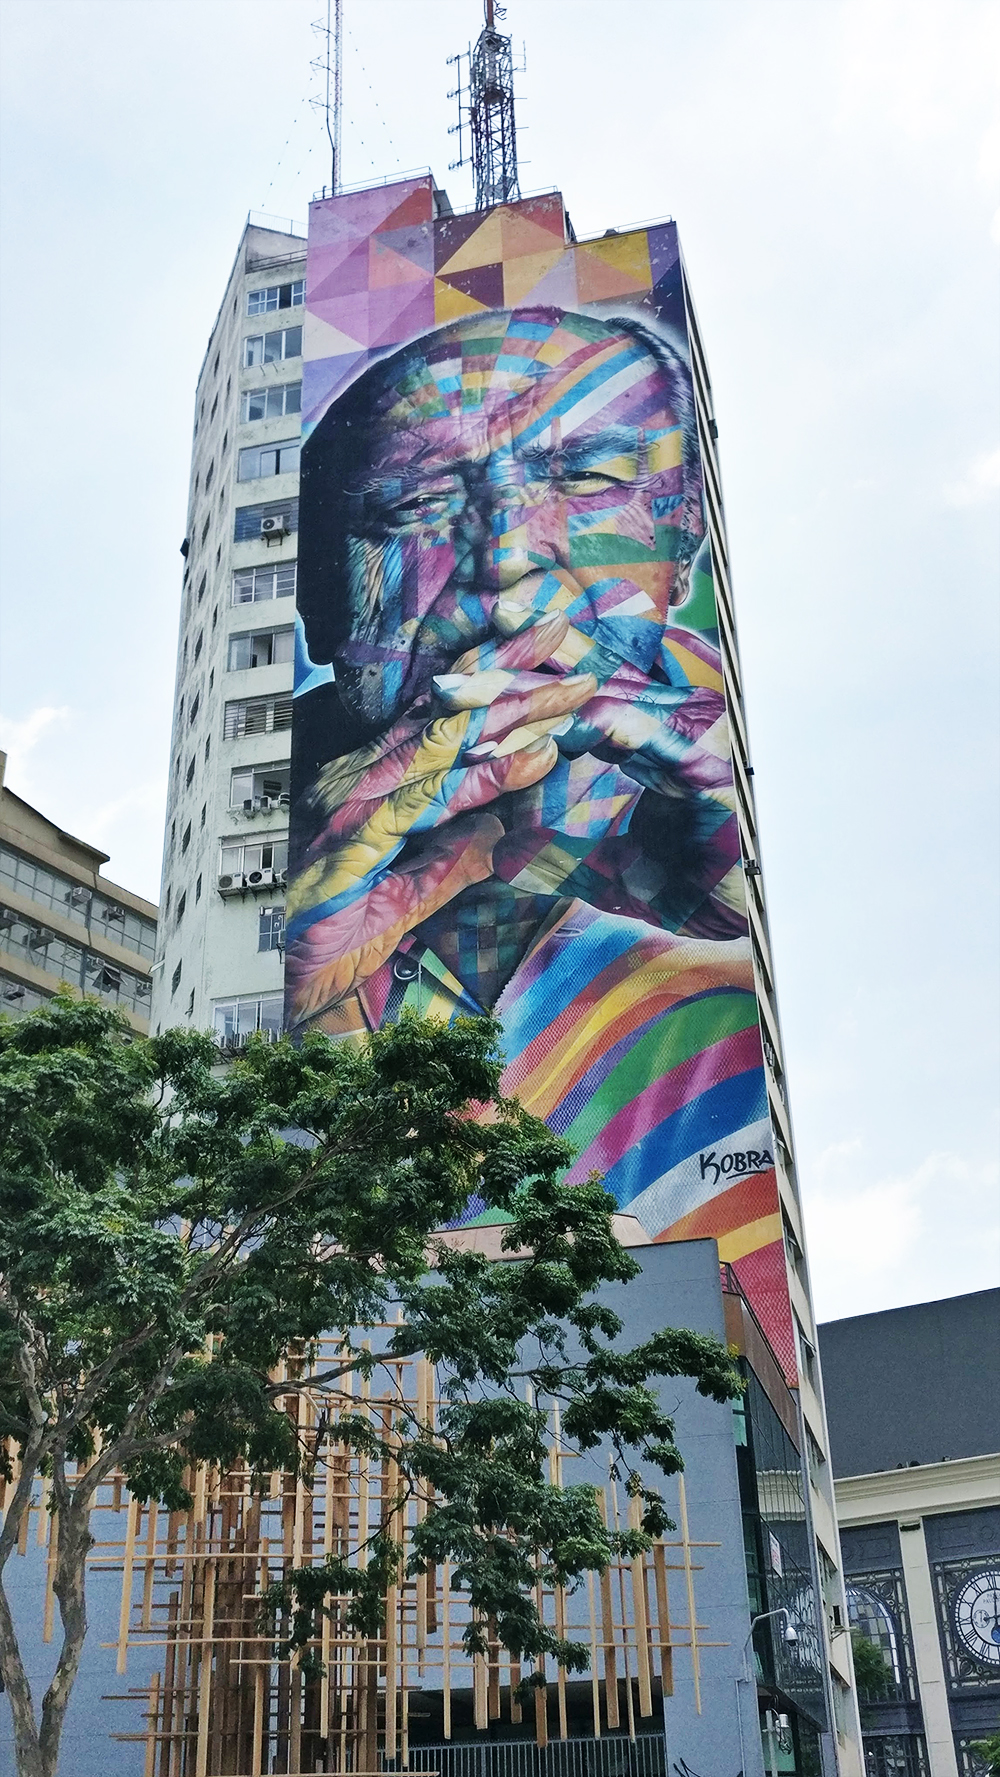 Street art: Oscar Niemeyer mural by Eduardo Kobra on Avenida Paulista, São Paulo - 10 things to do and see in São Paulo | Aliz's Wonderland